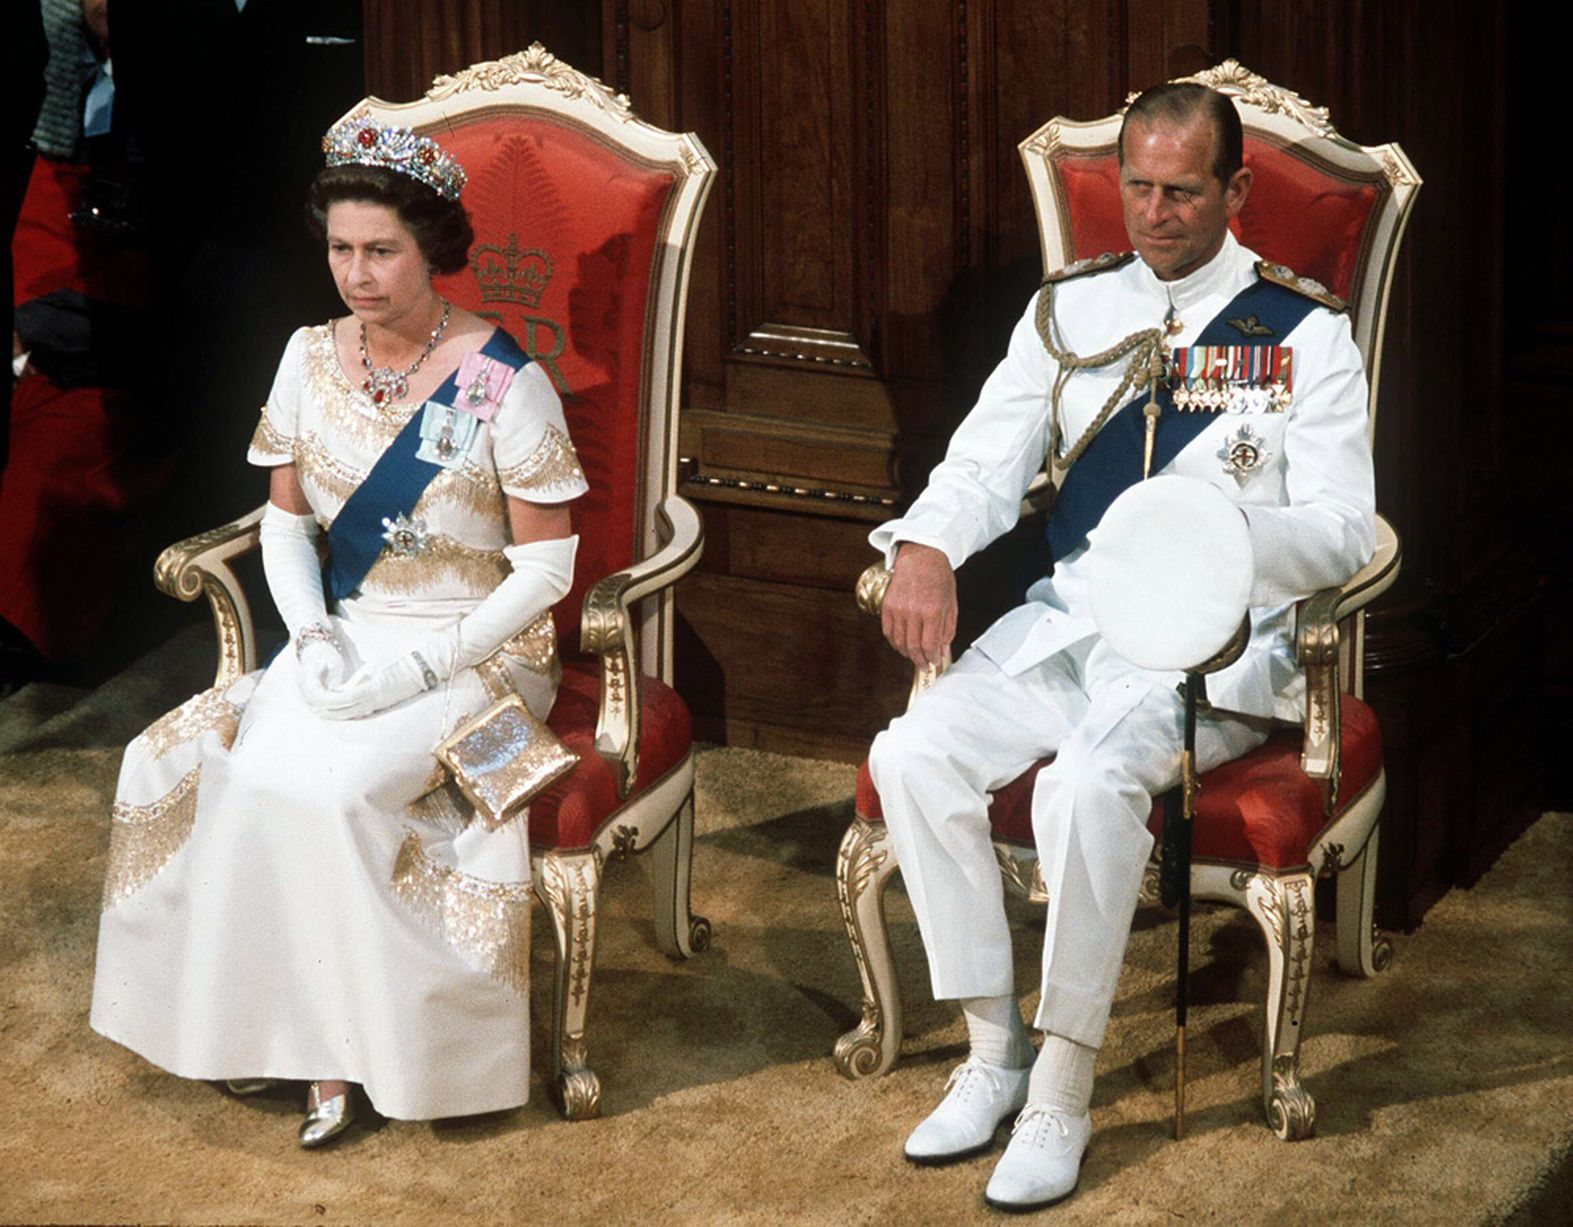 Queen Elizabeth Ii and Duke of Edinburgh Photo C GETTY IMAGES 0050